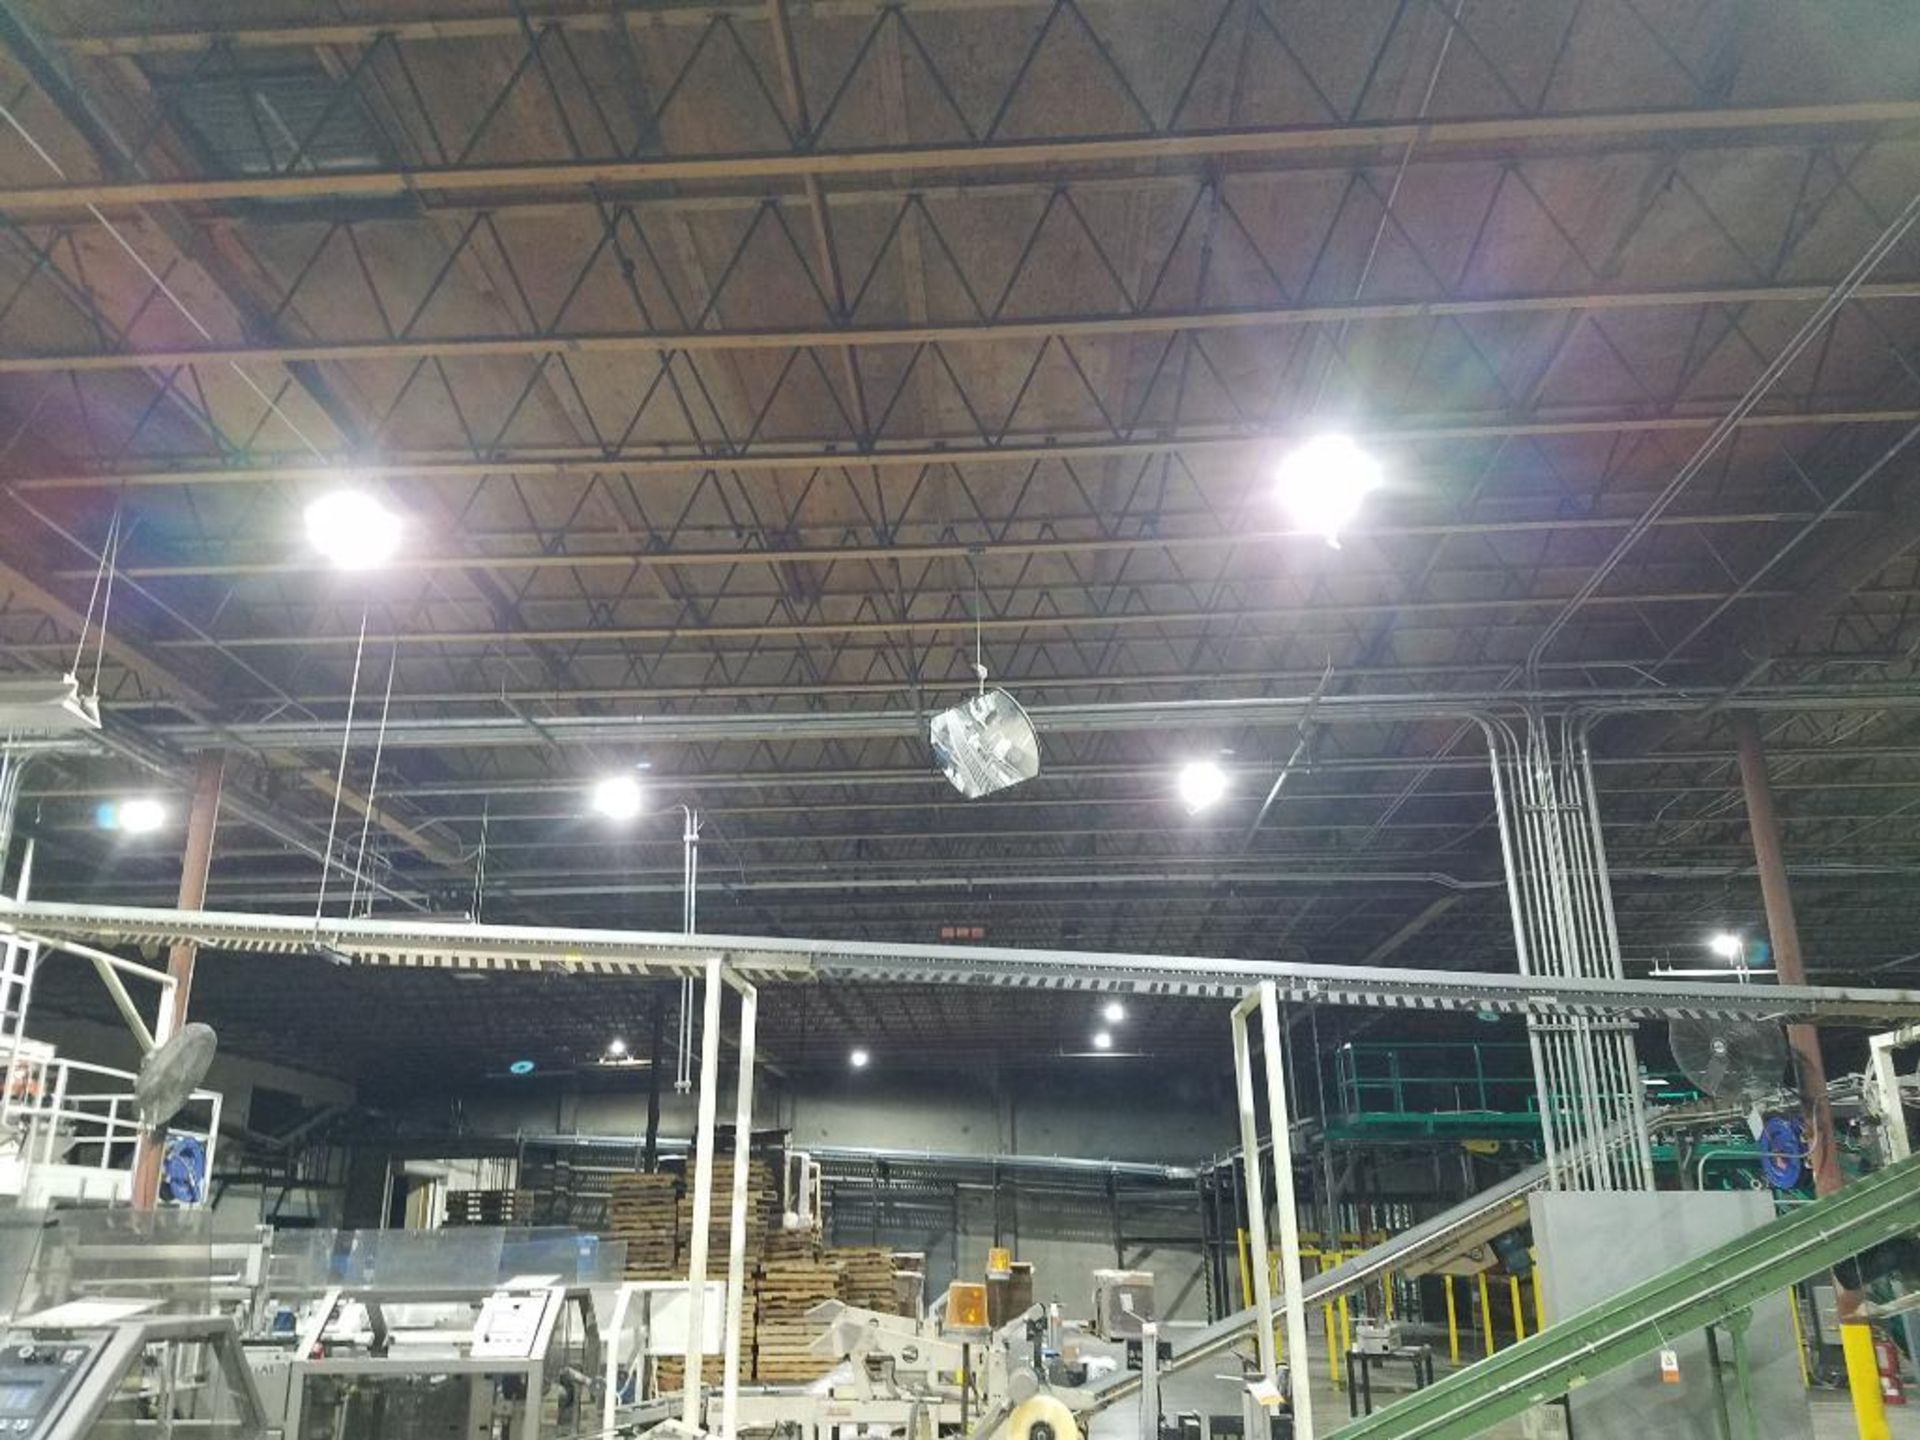 ceiling mounted safety mirrors - Image 3 of 4